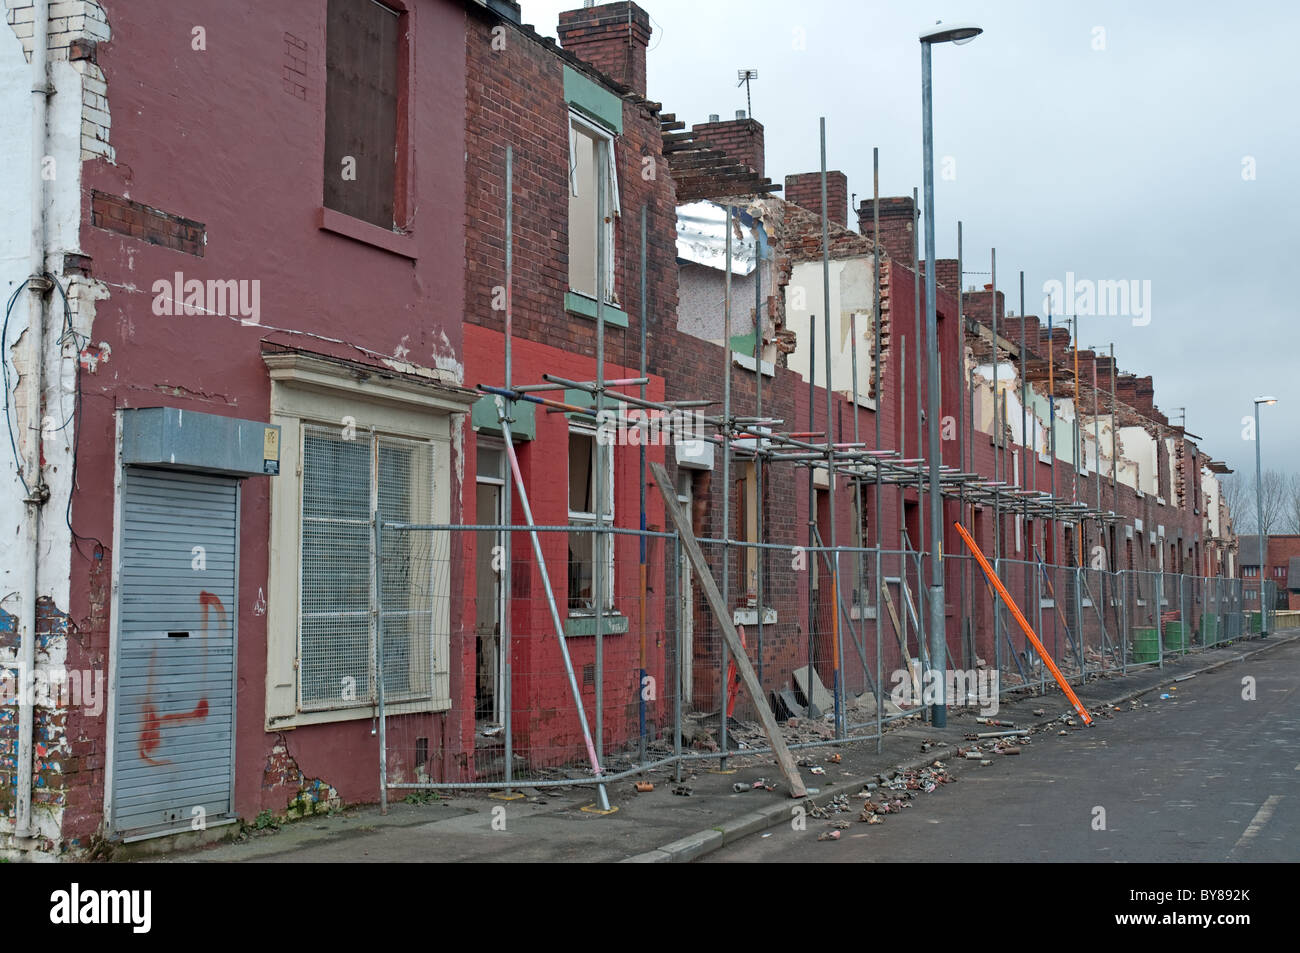 Partially demolished row of terraced houses.Openshaw  district of Manchester,UK. - Stock Image